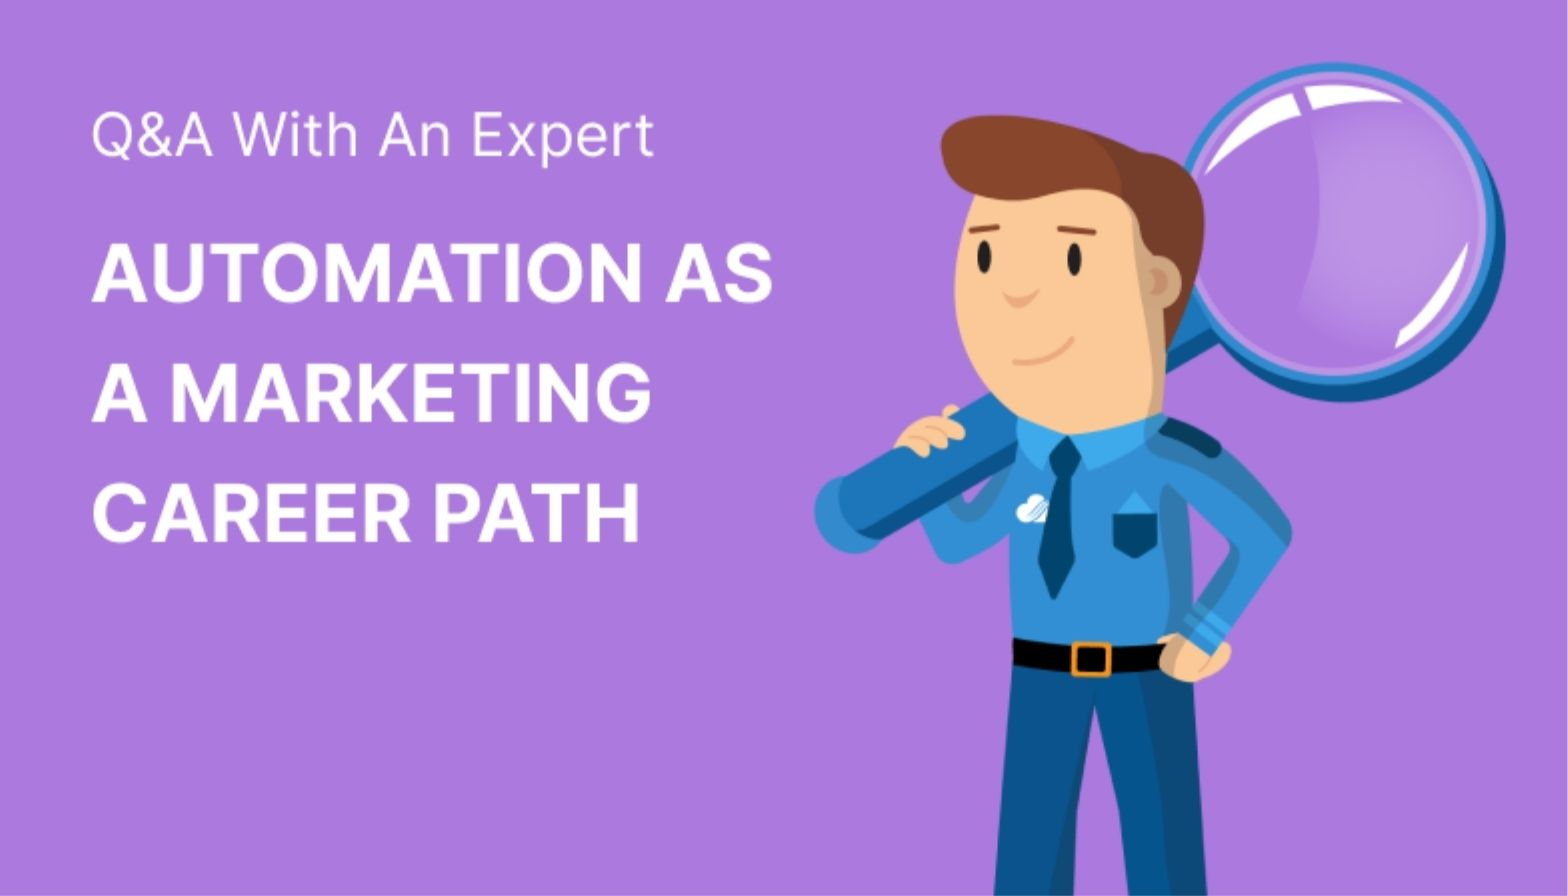 Automation as a Marketing Career Path: Q&A